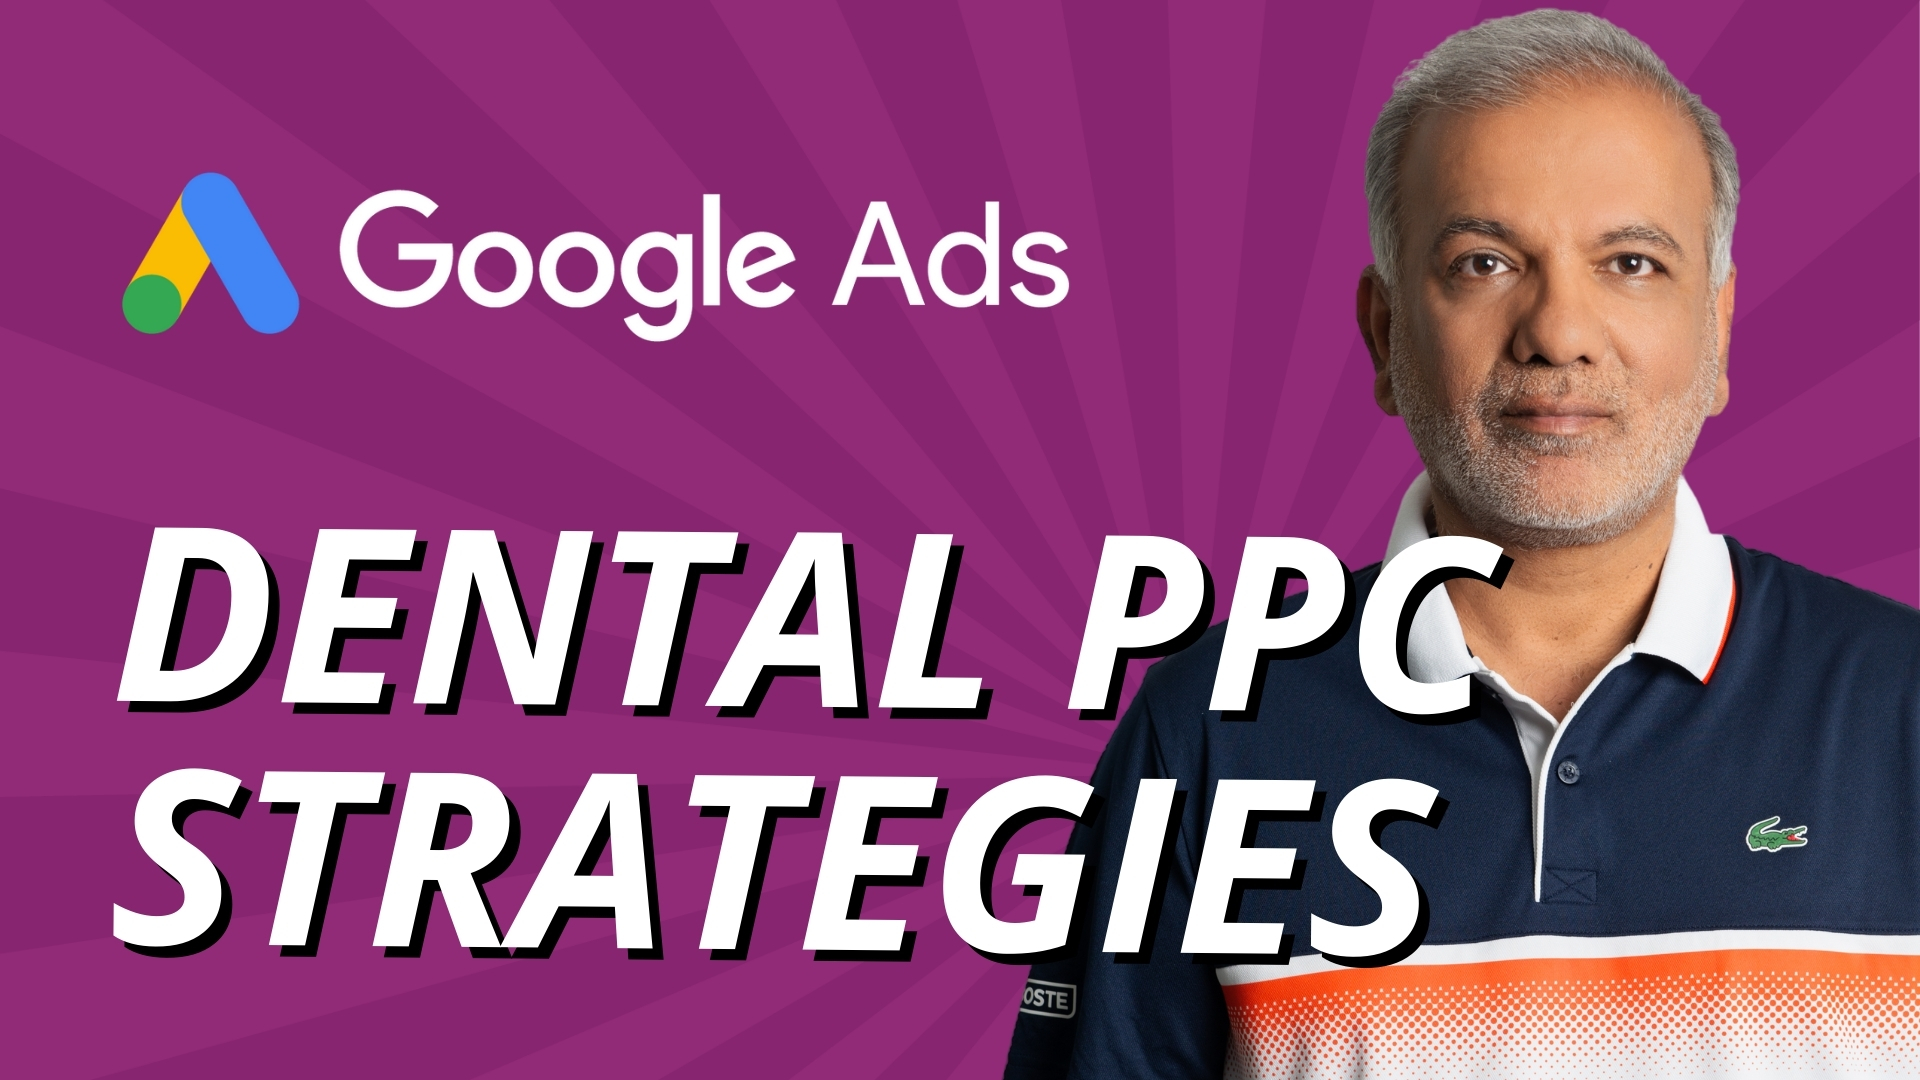 Dental PPC Strategies: How To Improve Your Google Ads For Dentists